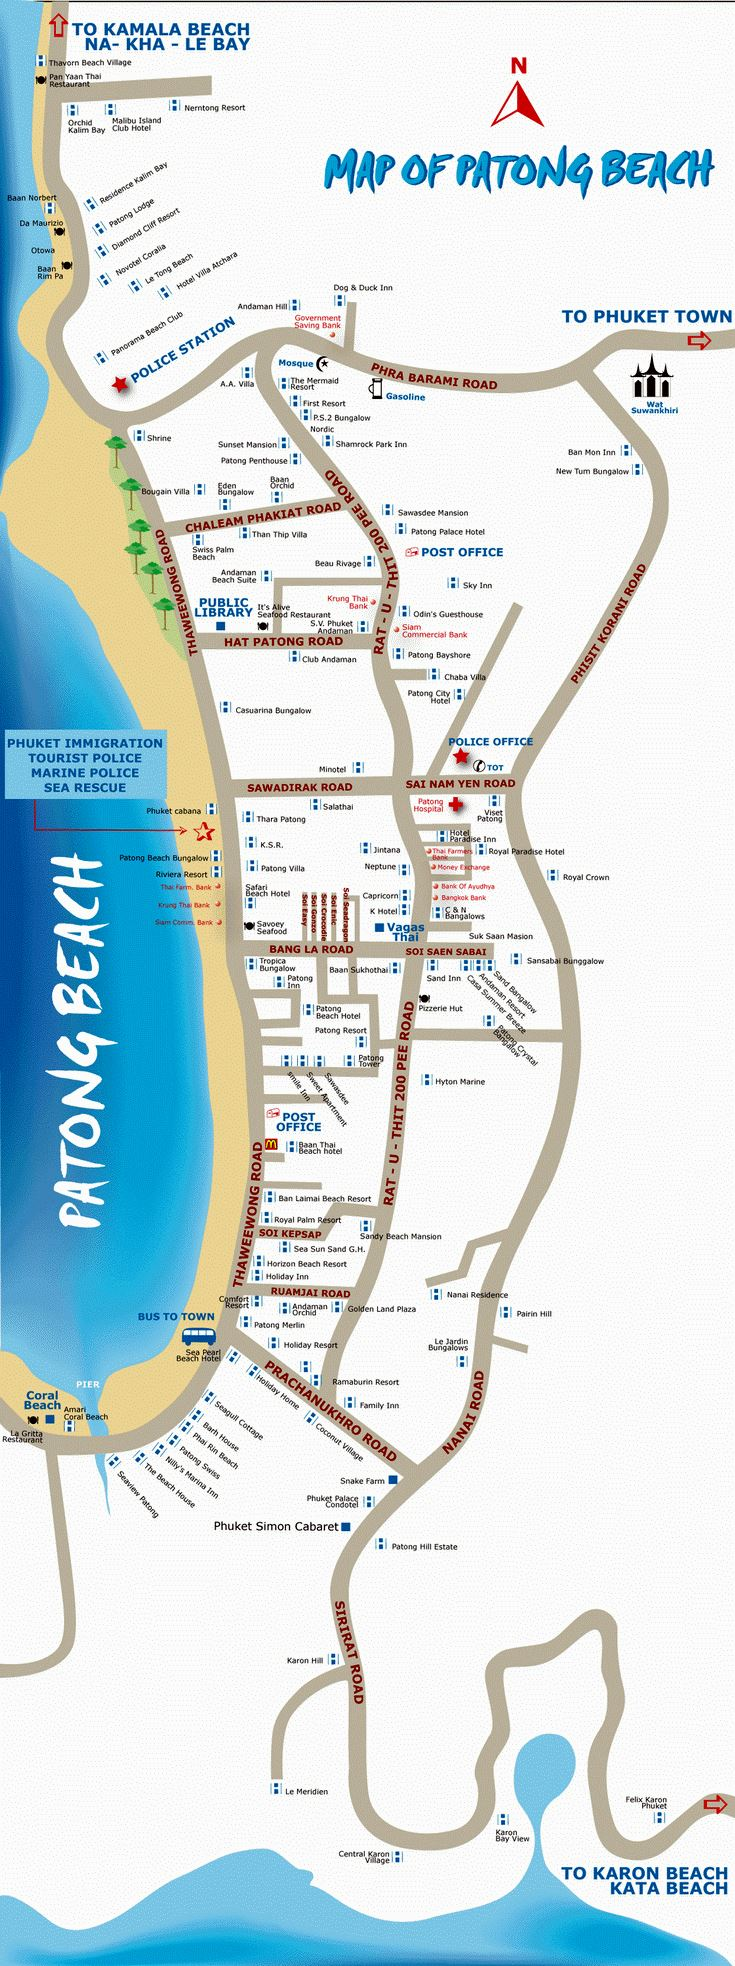 Large Map Of Patong Beach 3